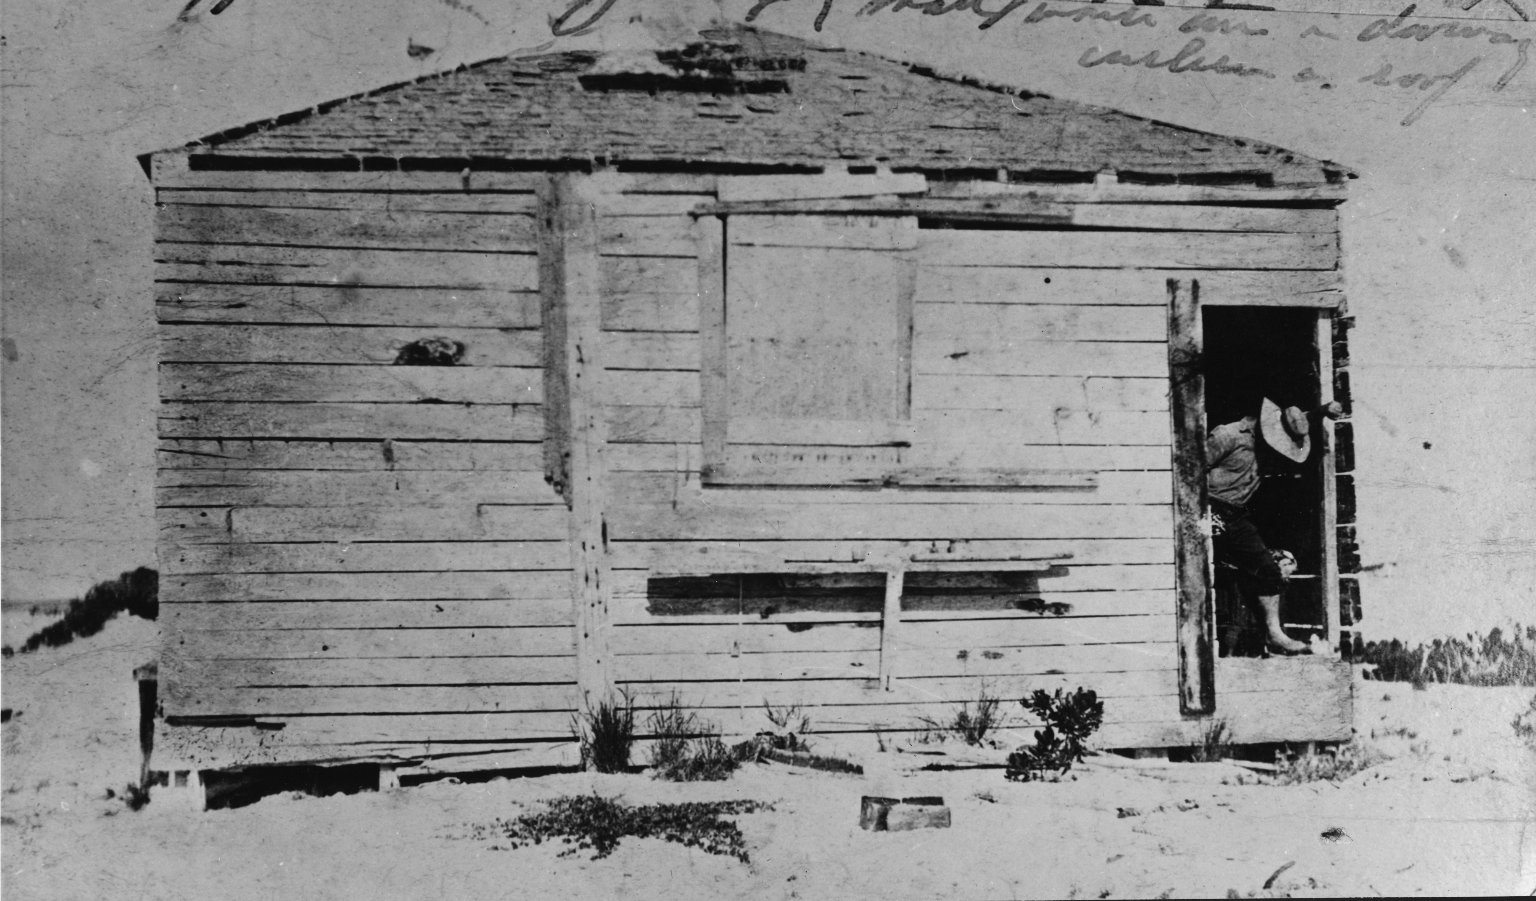 Castaway House on Midway Island